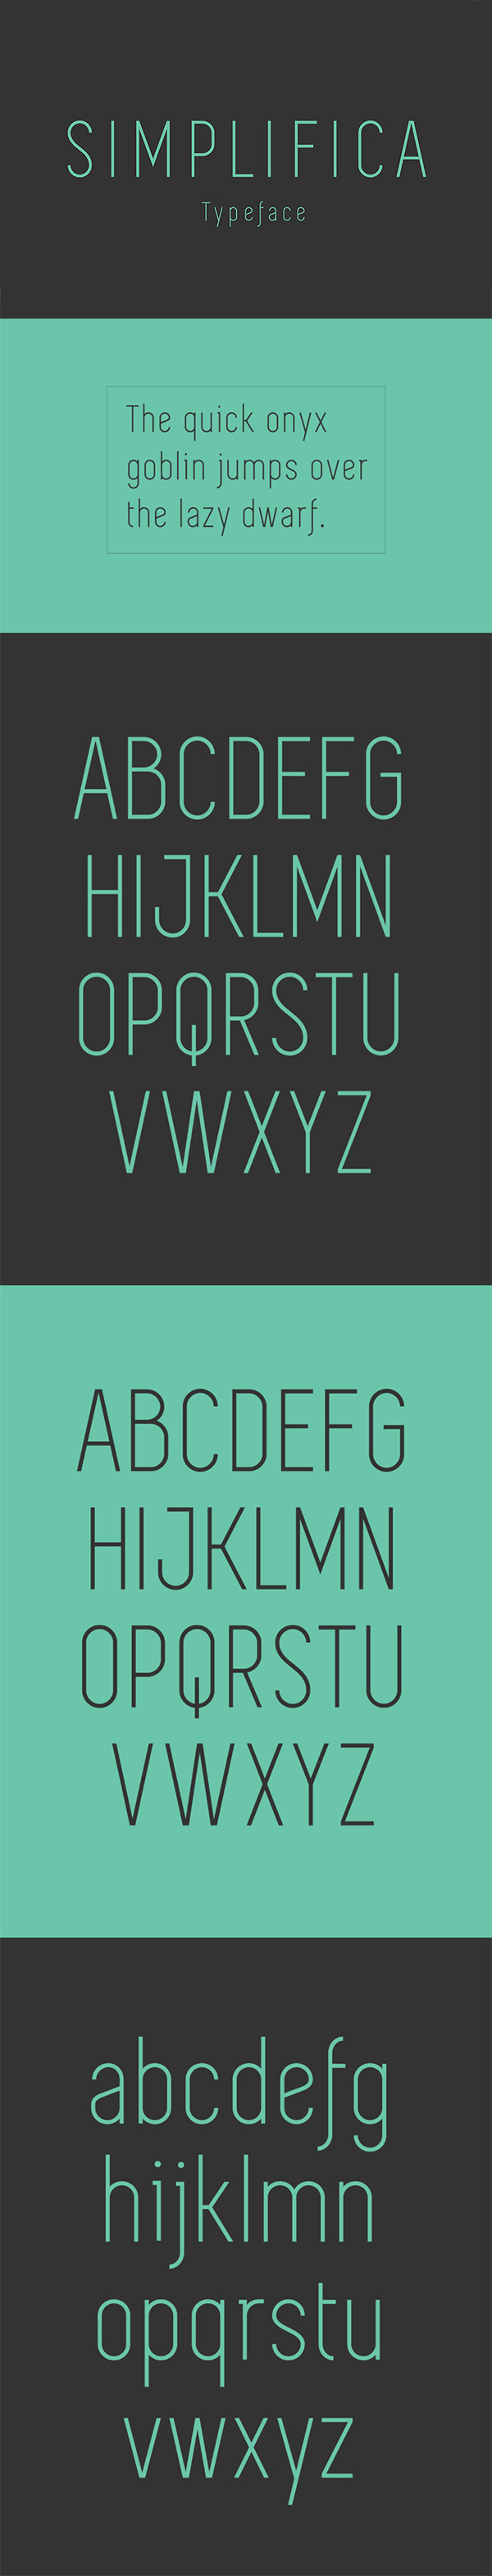 29+ Excellent Free Sans Serif Fonts For Commercial Use